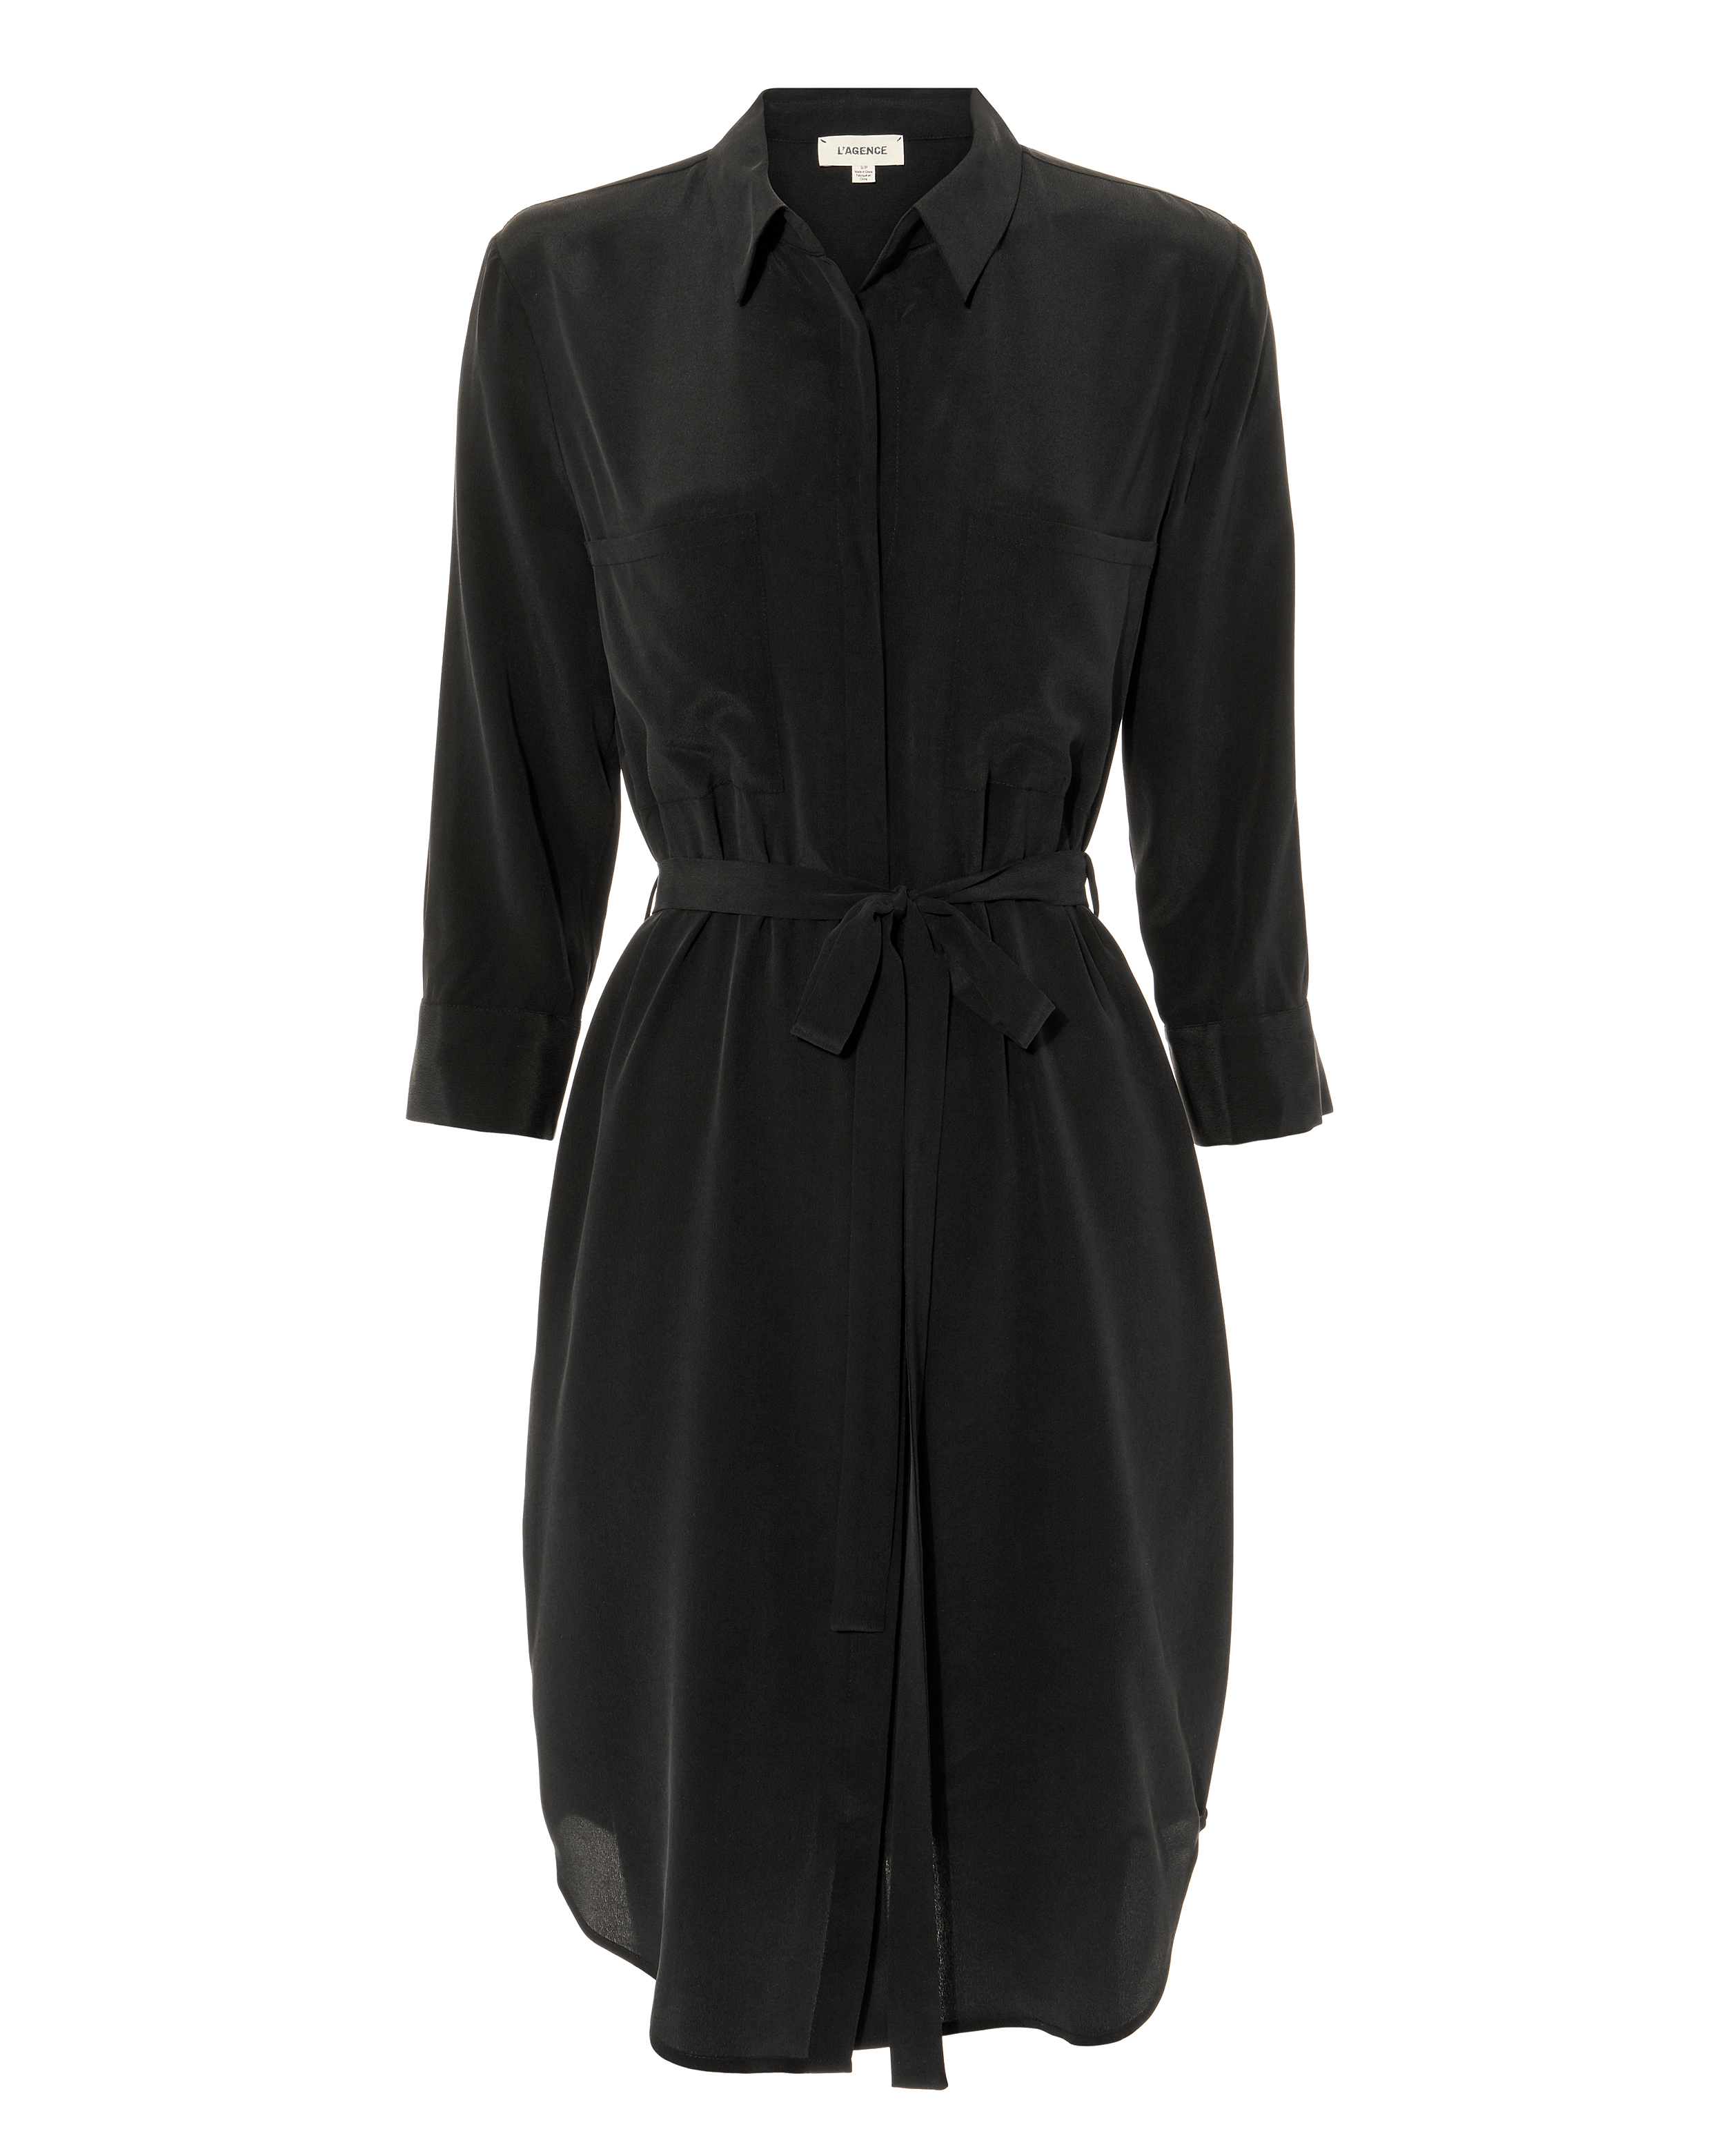 Stella Shirtdress by L'agence